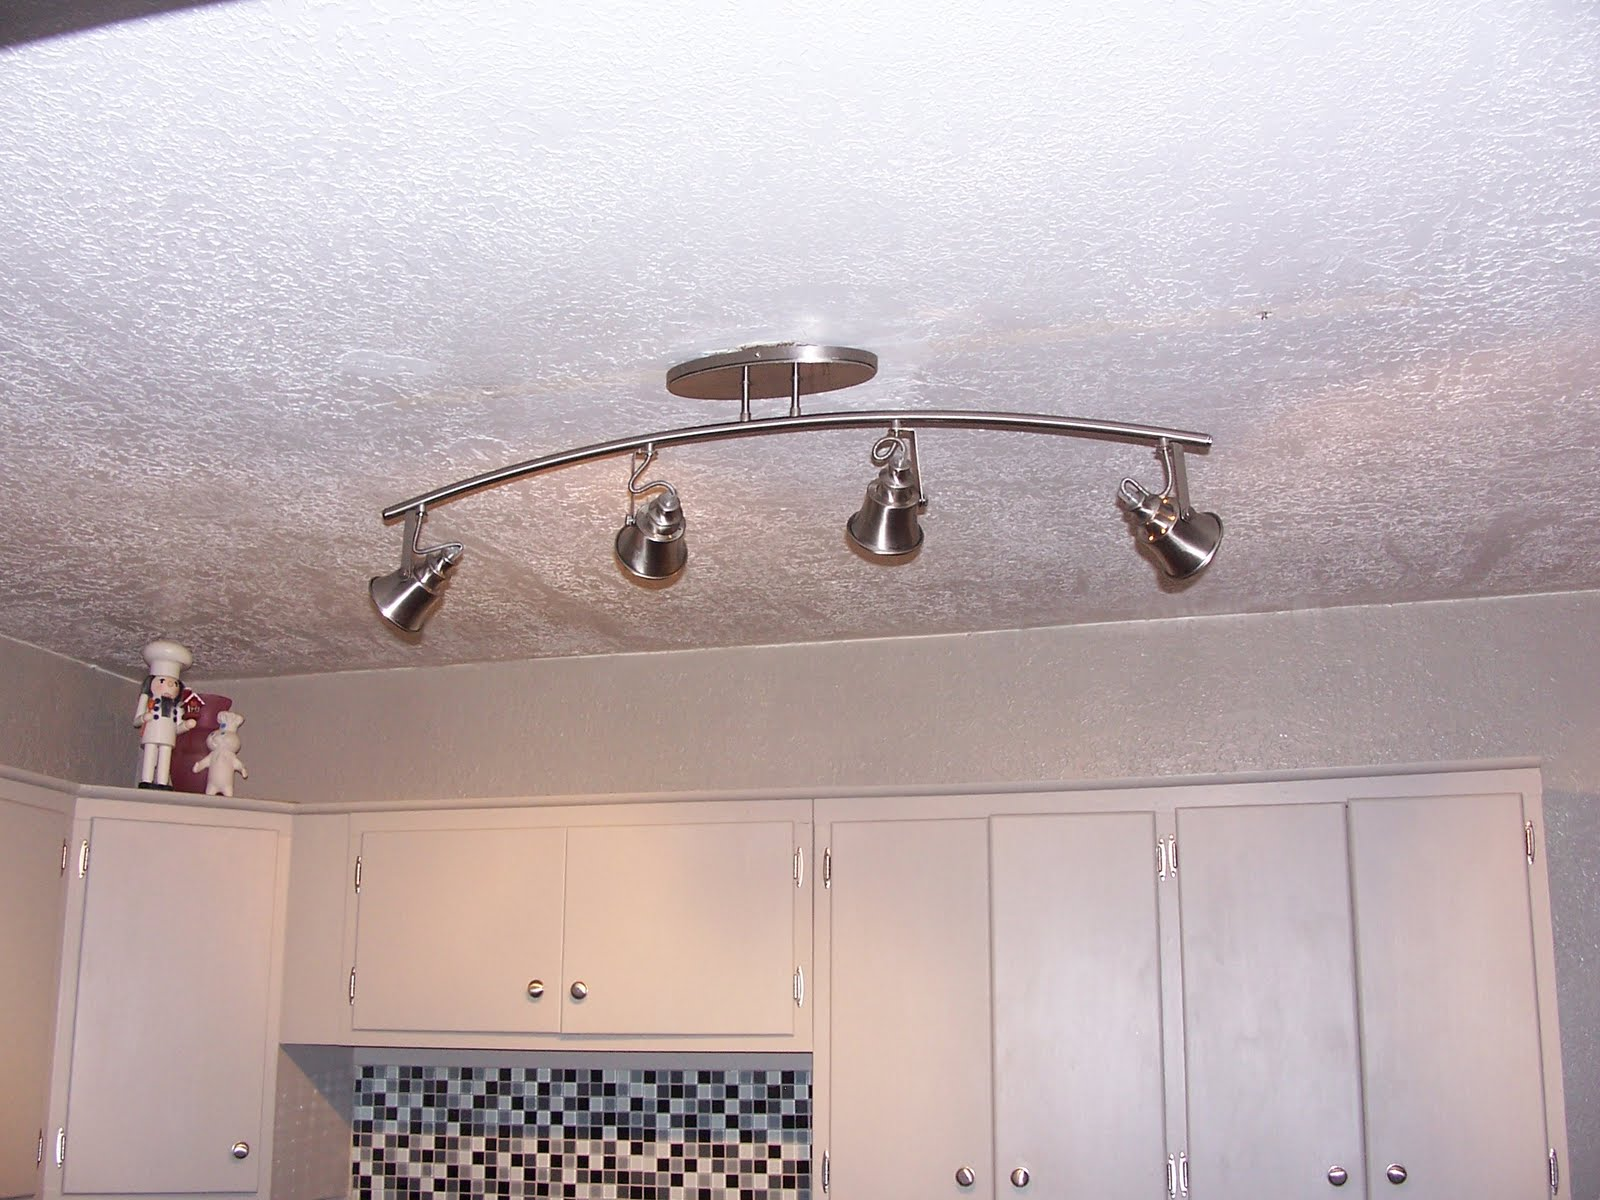 Attic Route Costco Kitchen Light - Nickel kitchen light fixtures